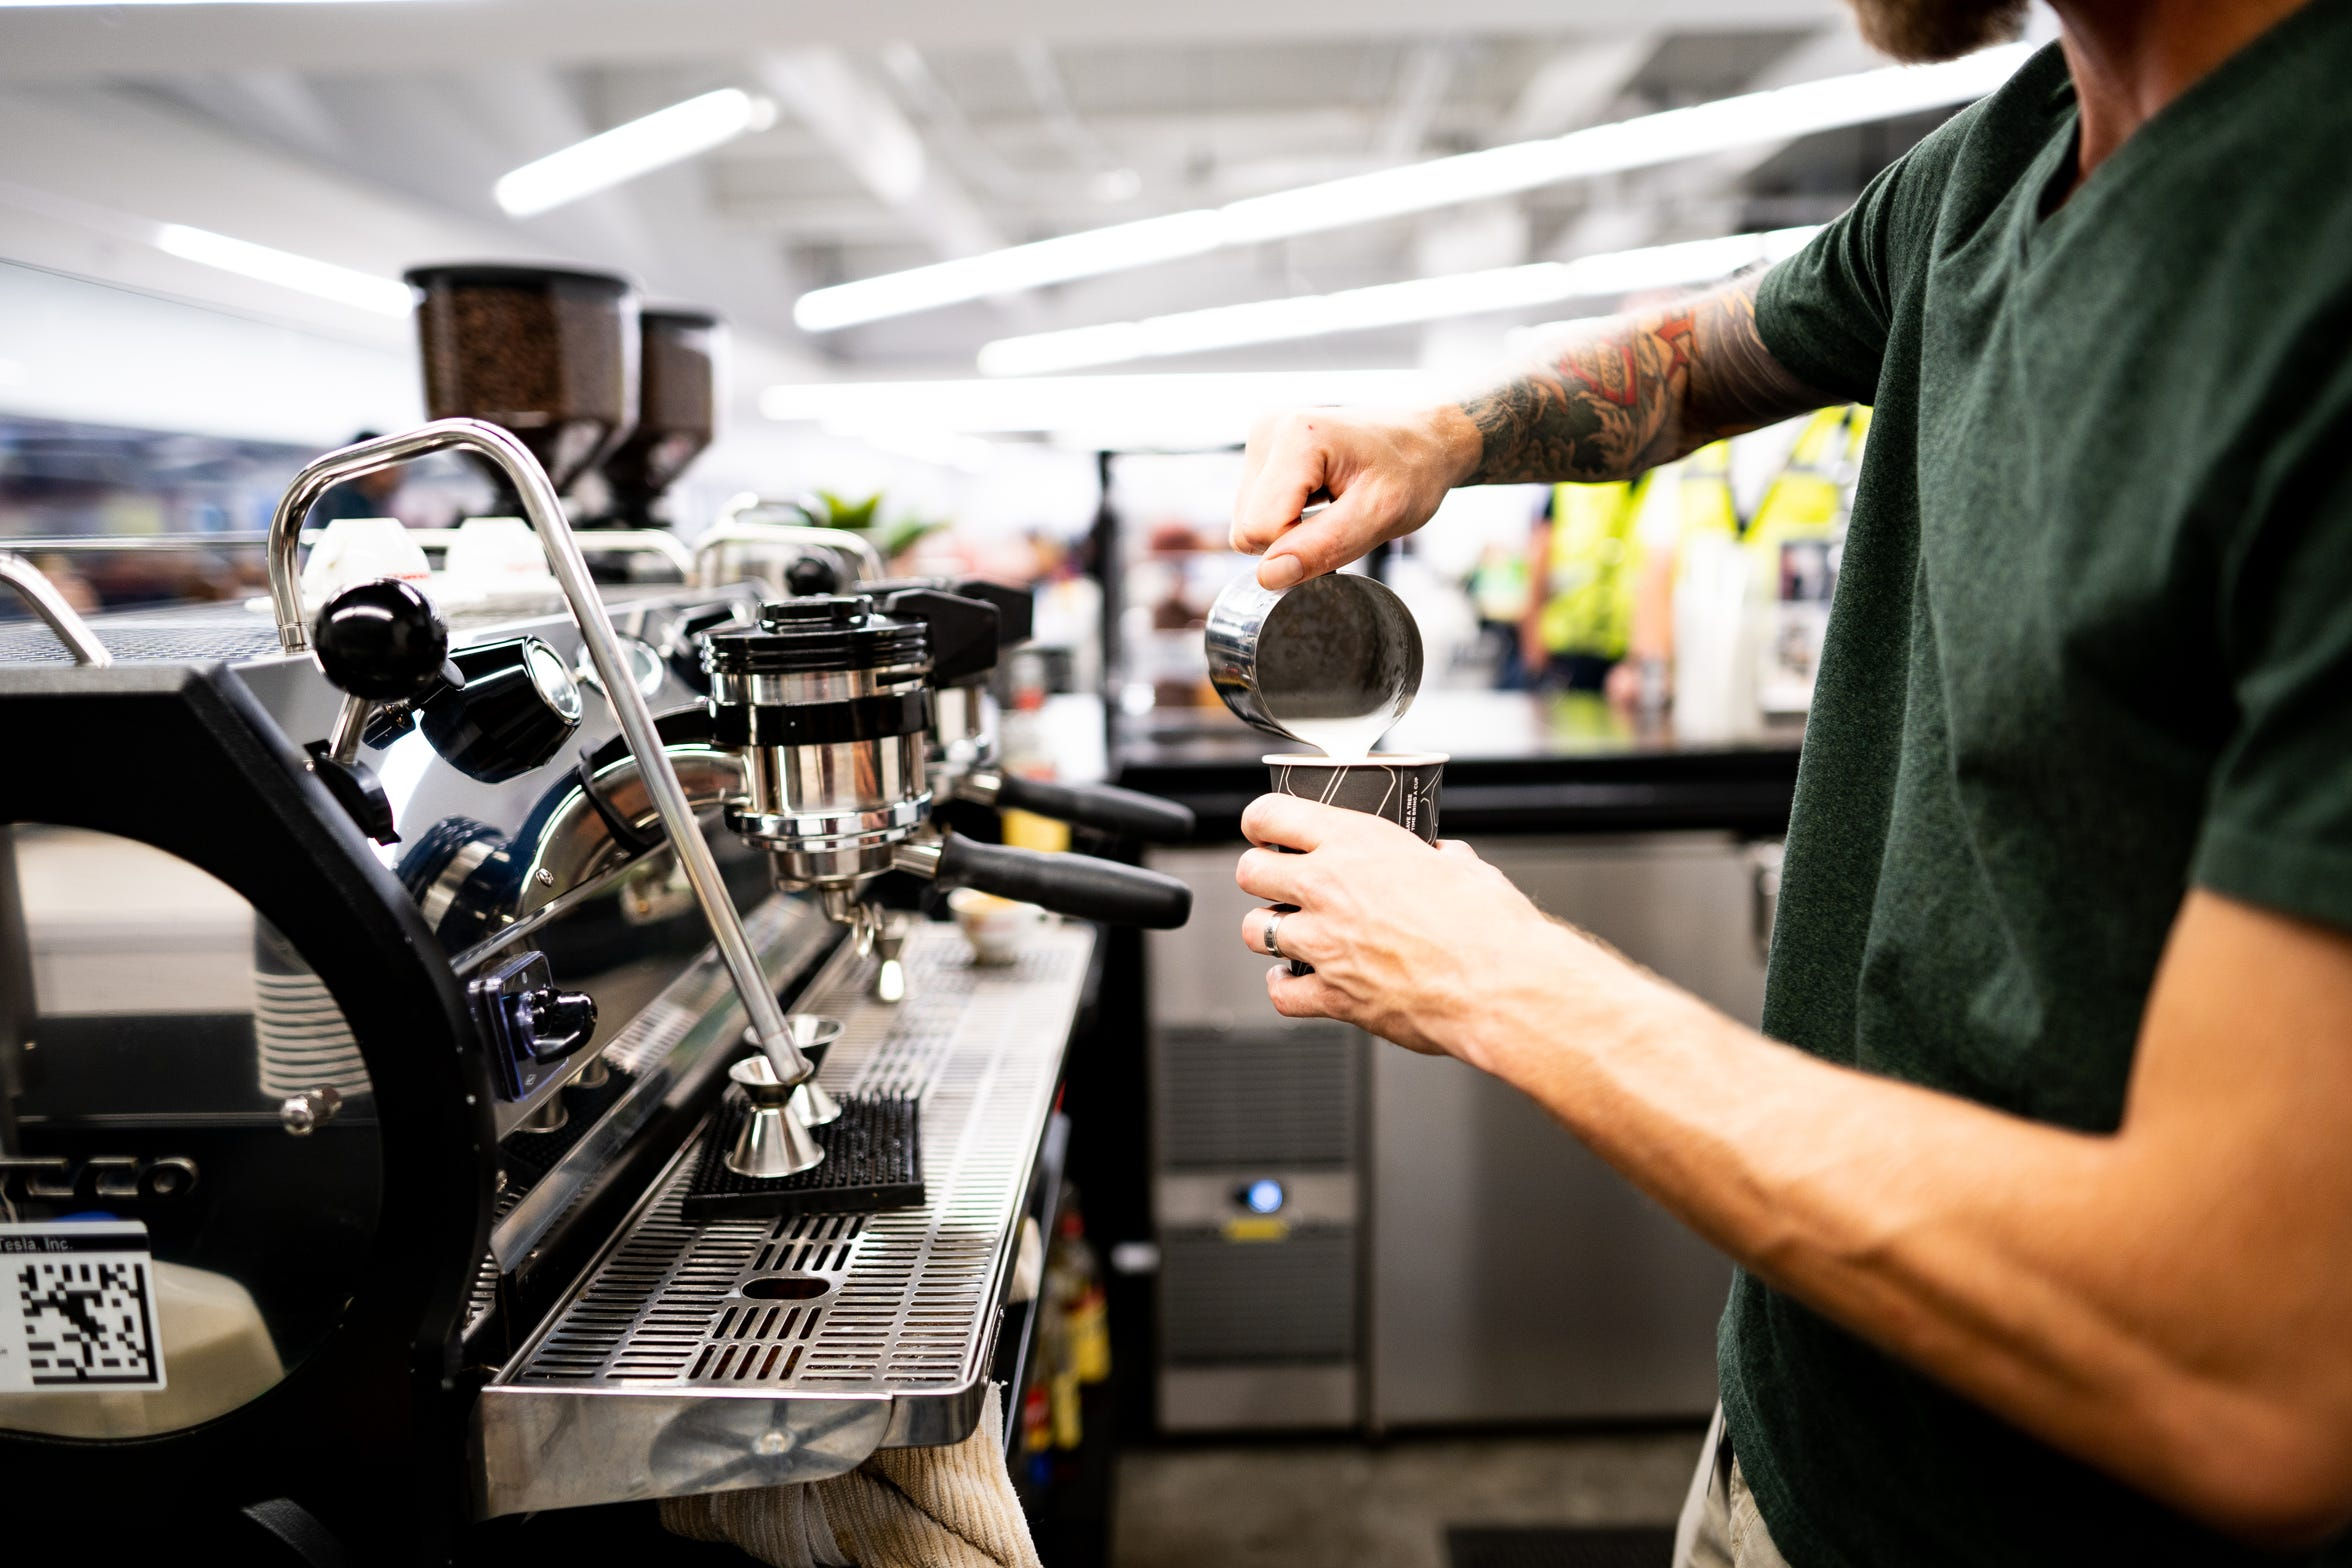 Hand Craft Coffee Co. started as a mobile vendor at the Tesla Gigafactory east of Reno. The baristas moved into the main cafeteria in January 2018.